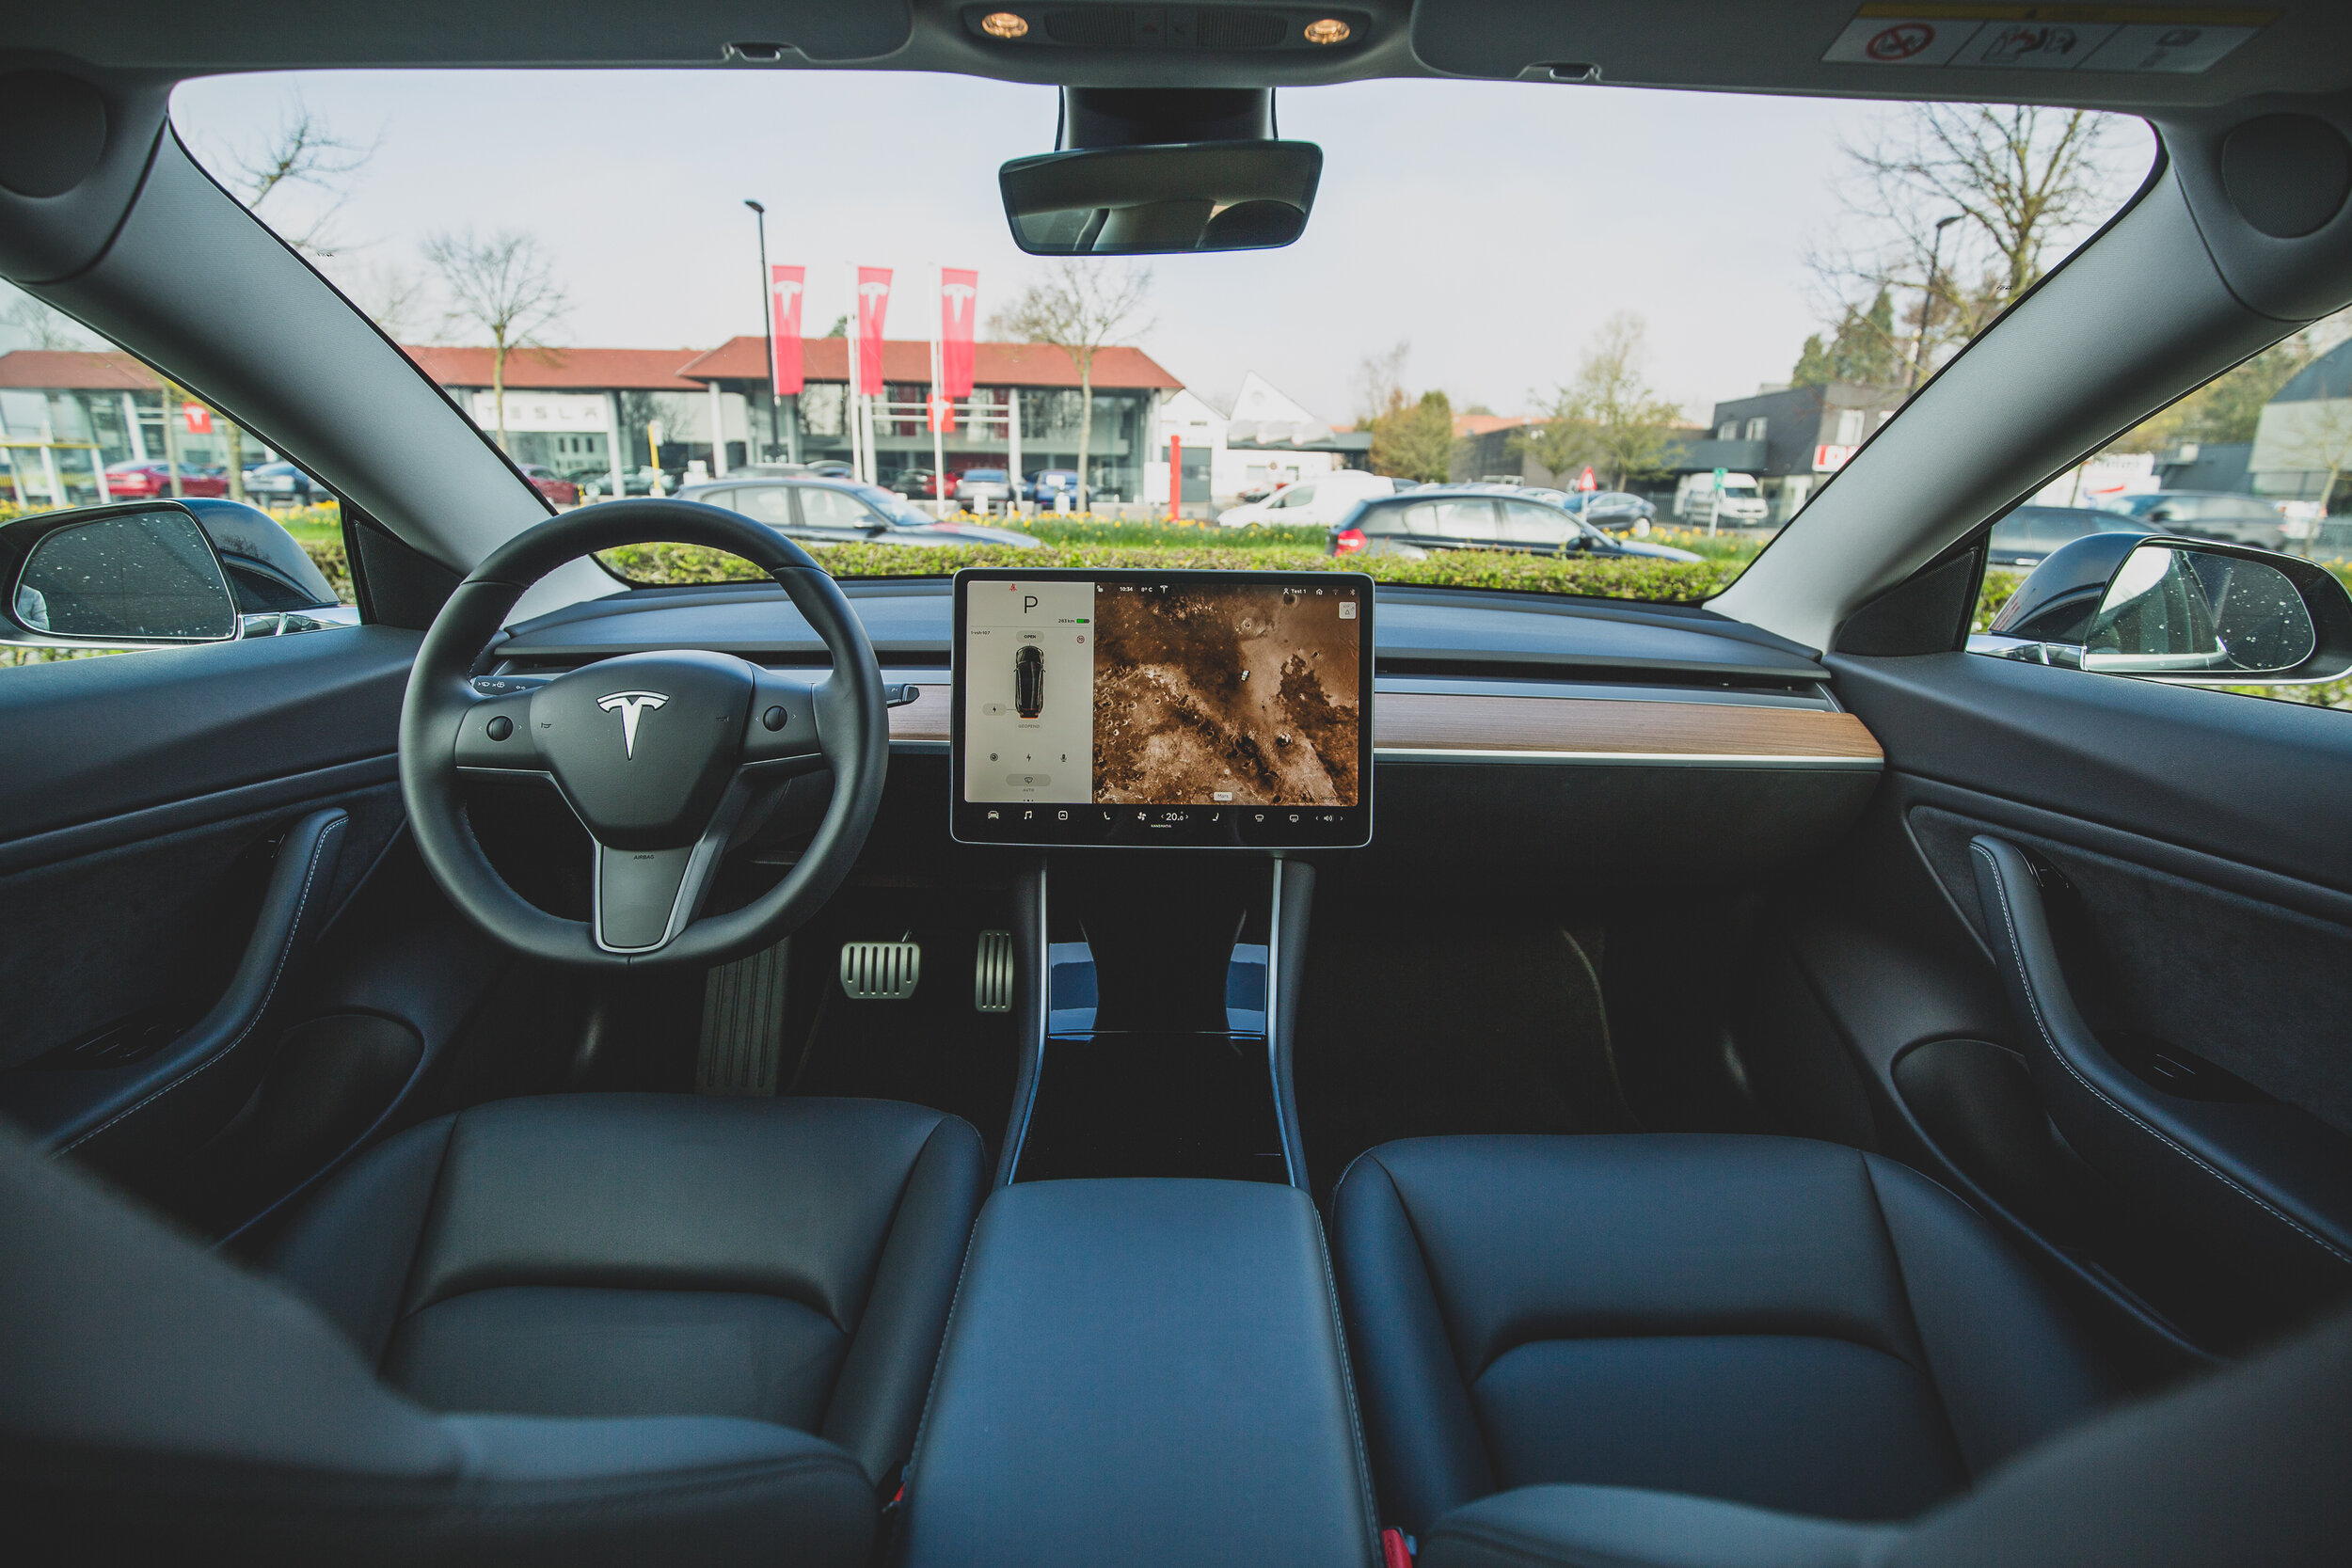 Connected Automobiles - In-car tech set-up and training / Apple CarPlay / Android Auto / Safety Ratings